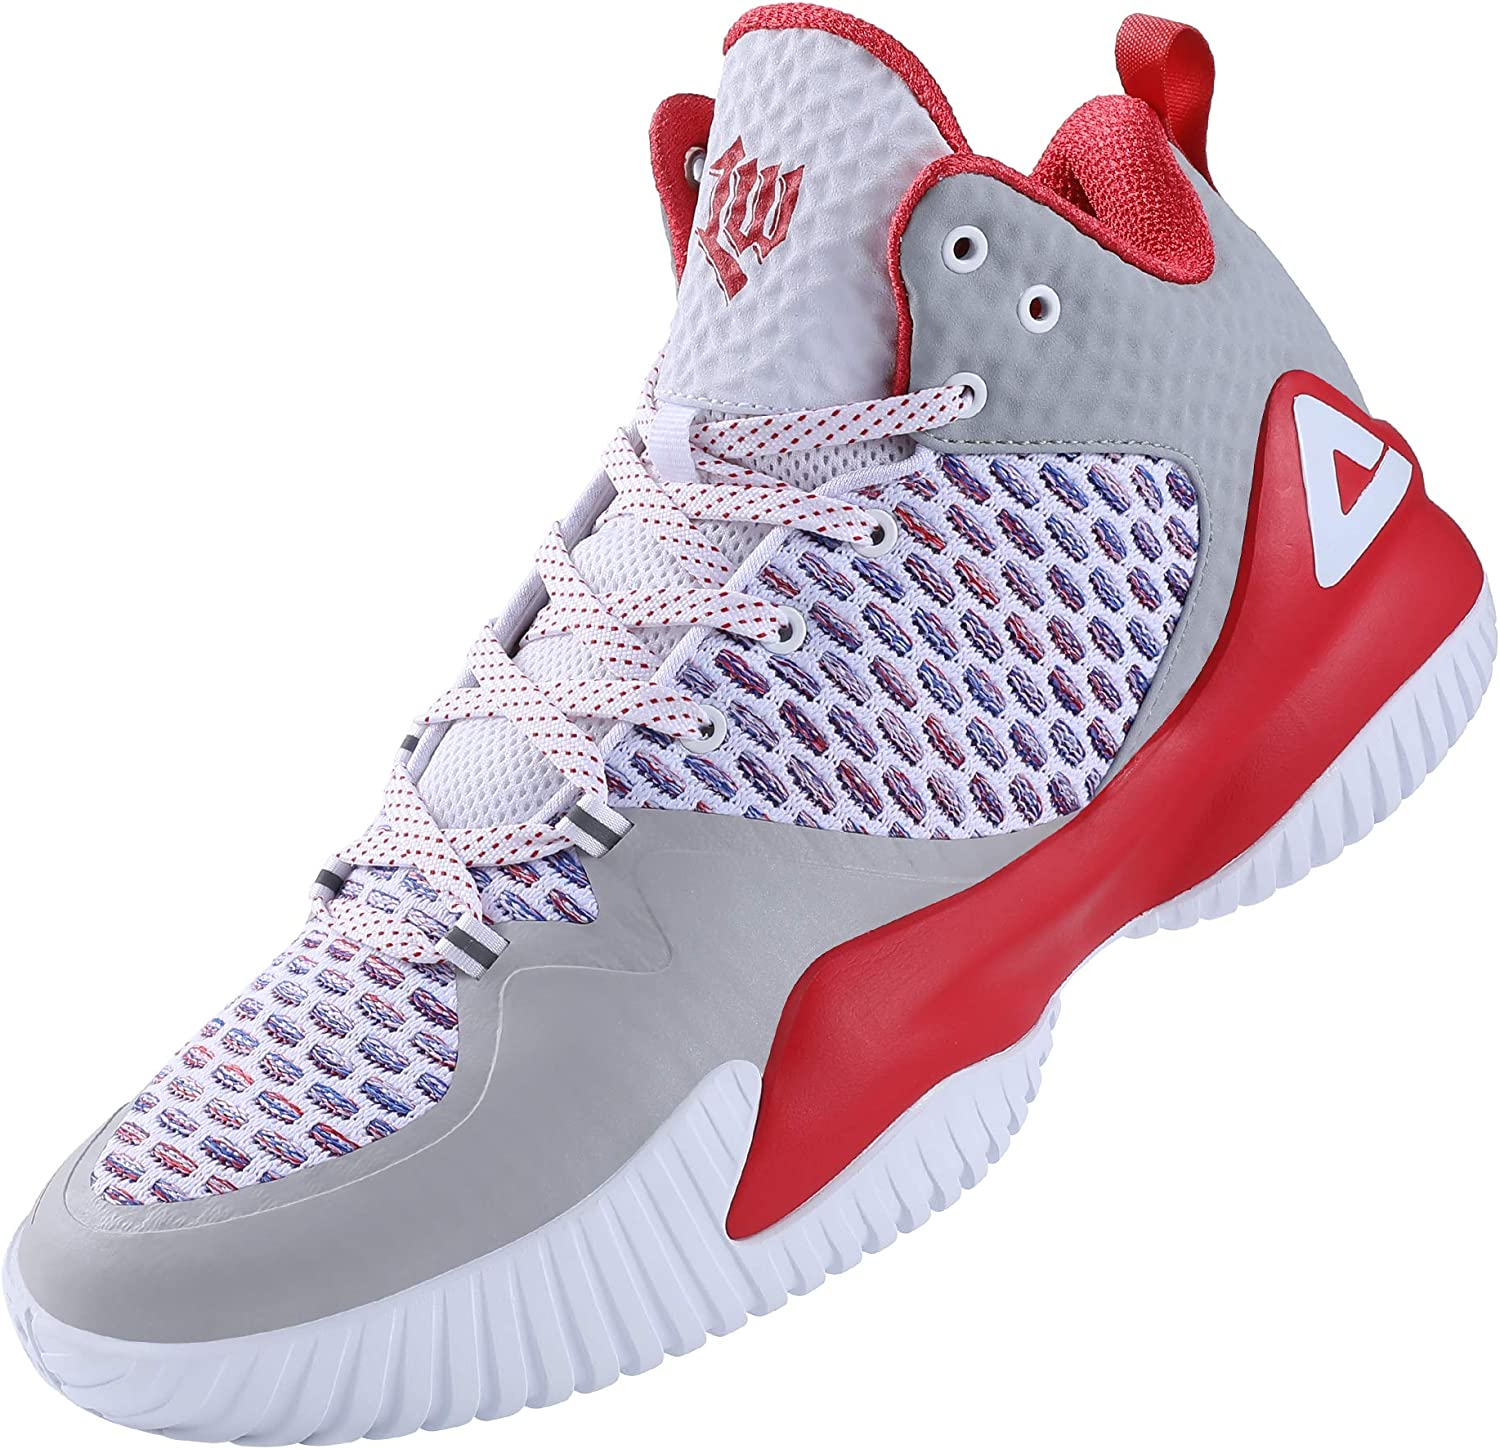 PEAK High Ranking TOP9 Top Mens NEW before selling ☆ Basketball Mast Williams Streetball Lou Shoes